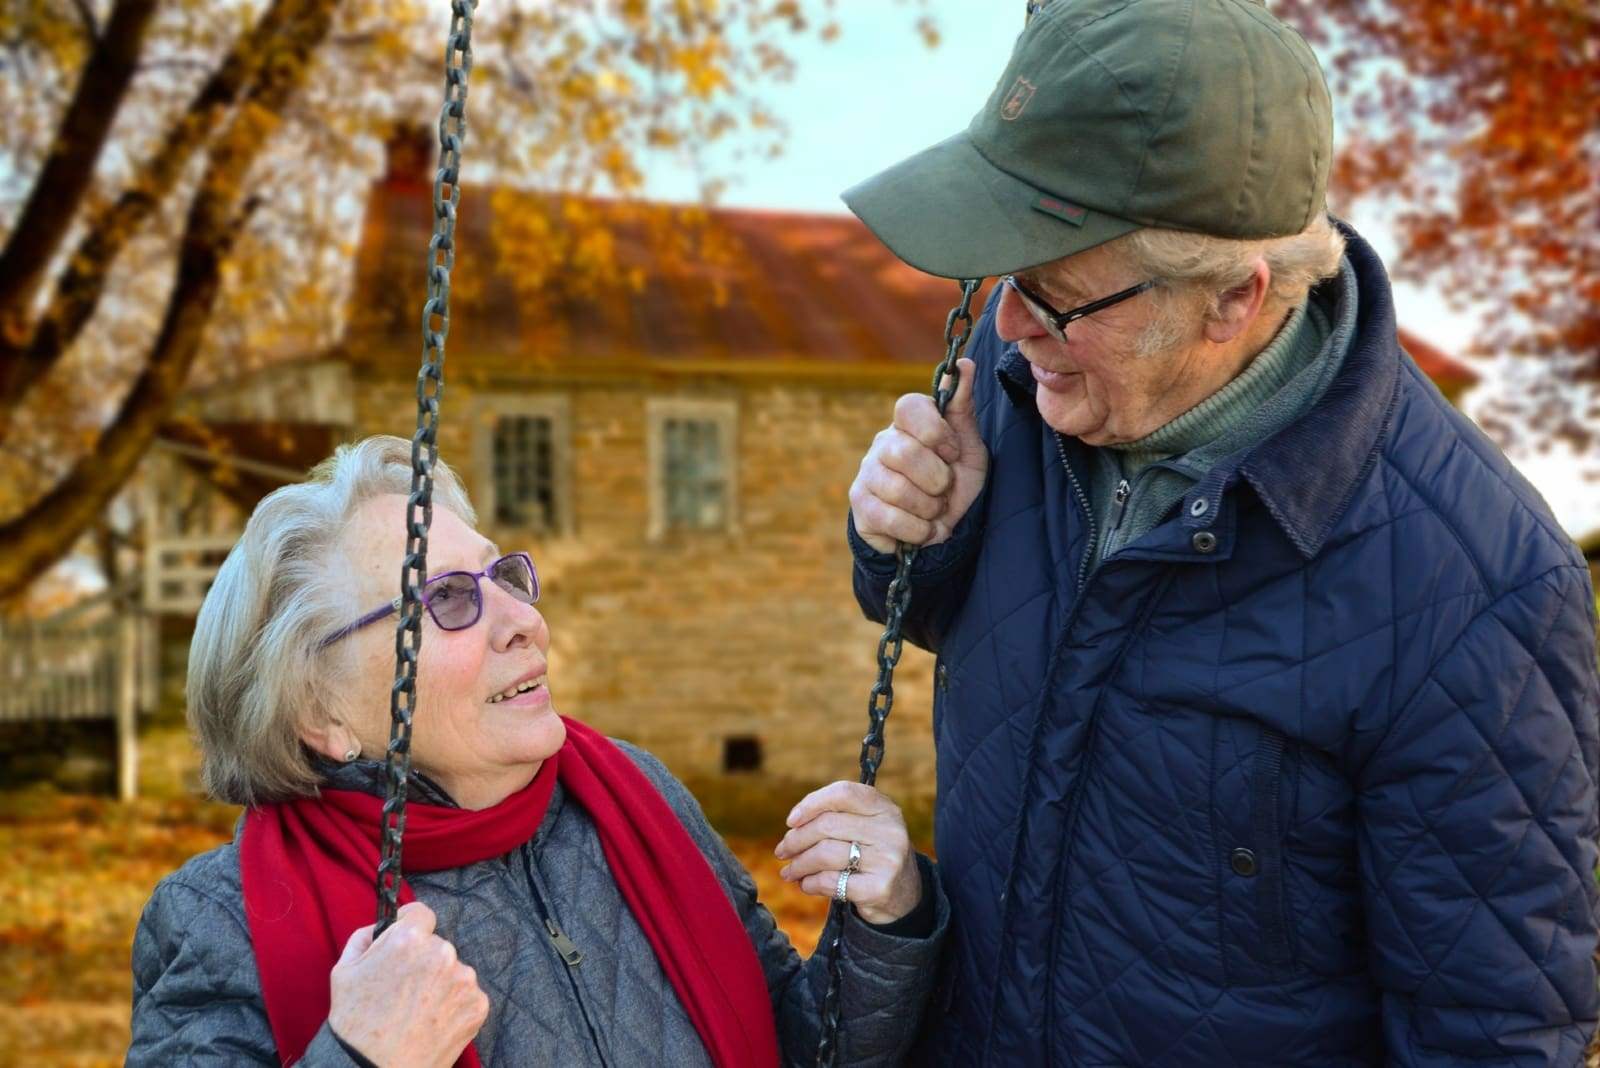 woman looking at man while sitting on swing